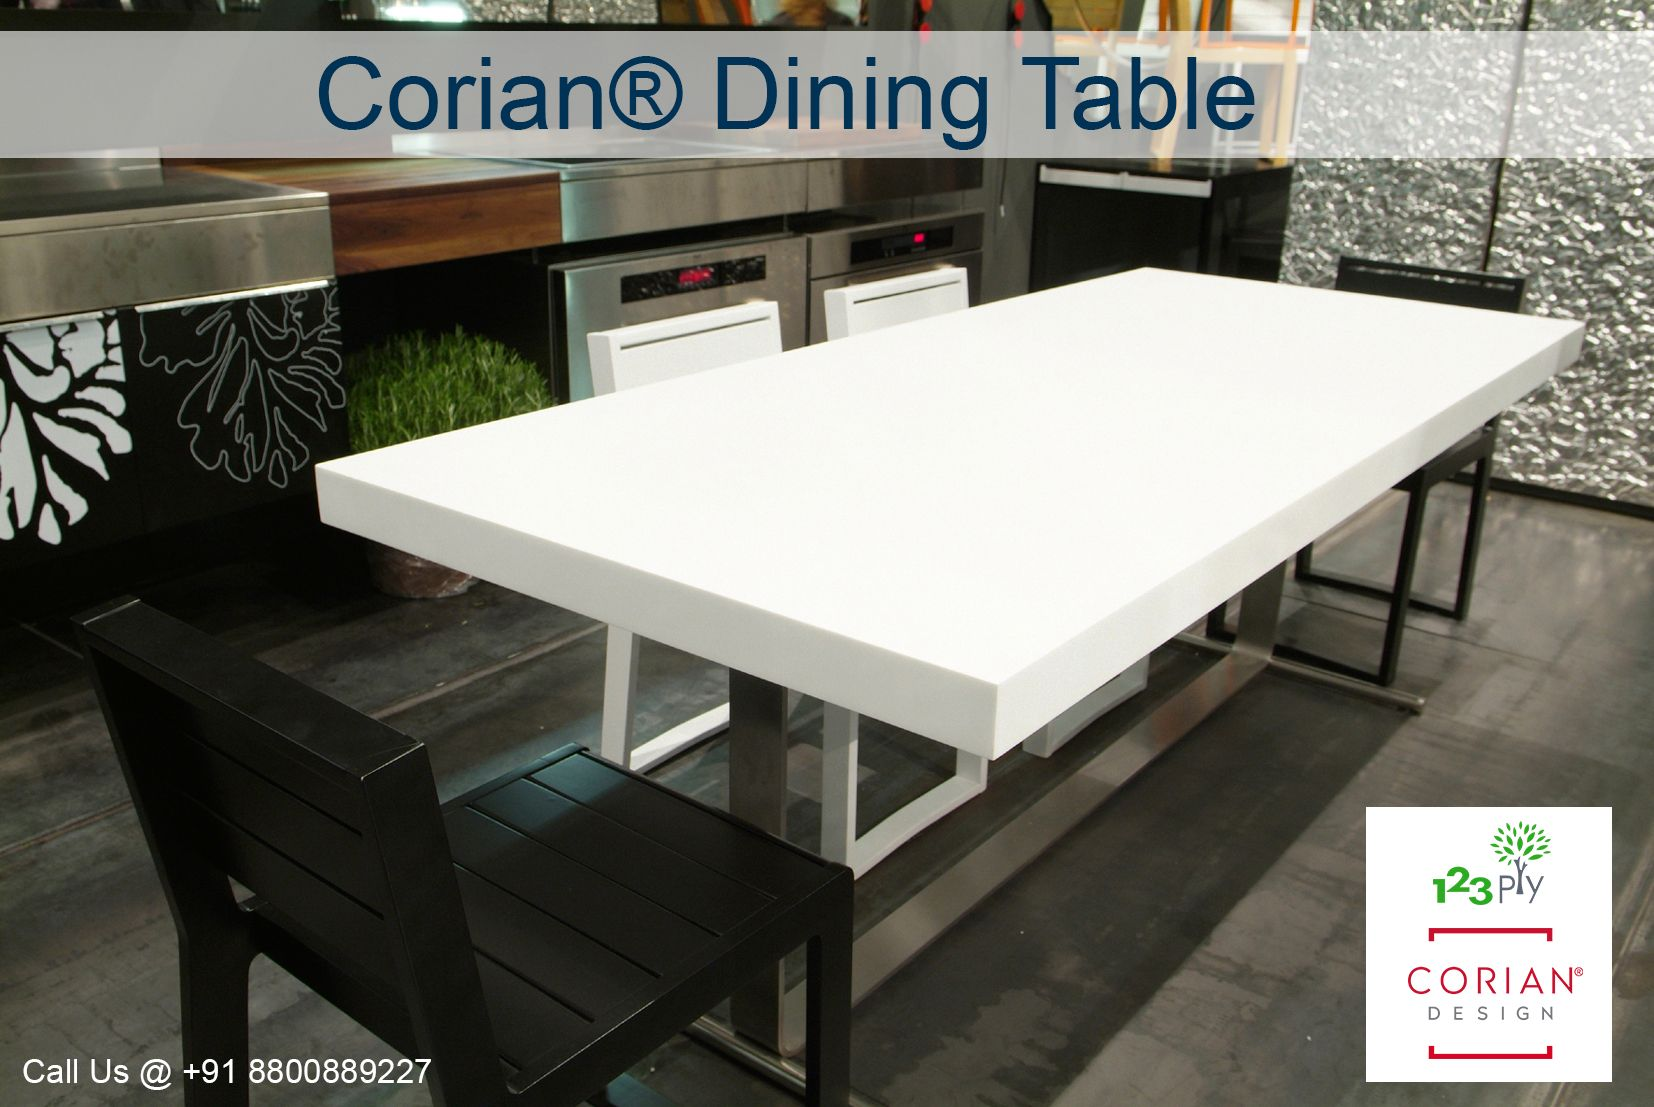 Dupont Corian Dining Table Design Explore Your Dining Table With